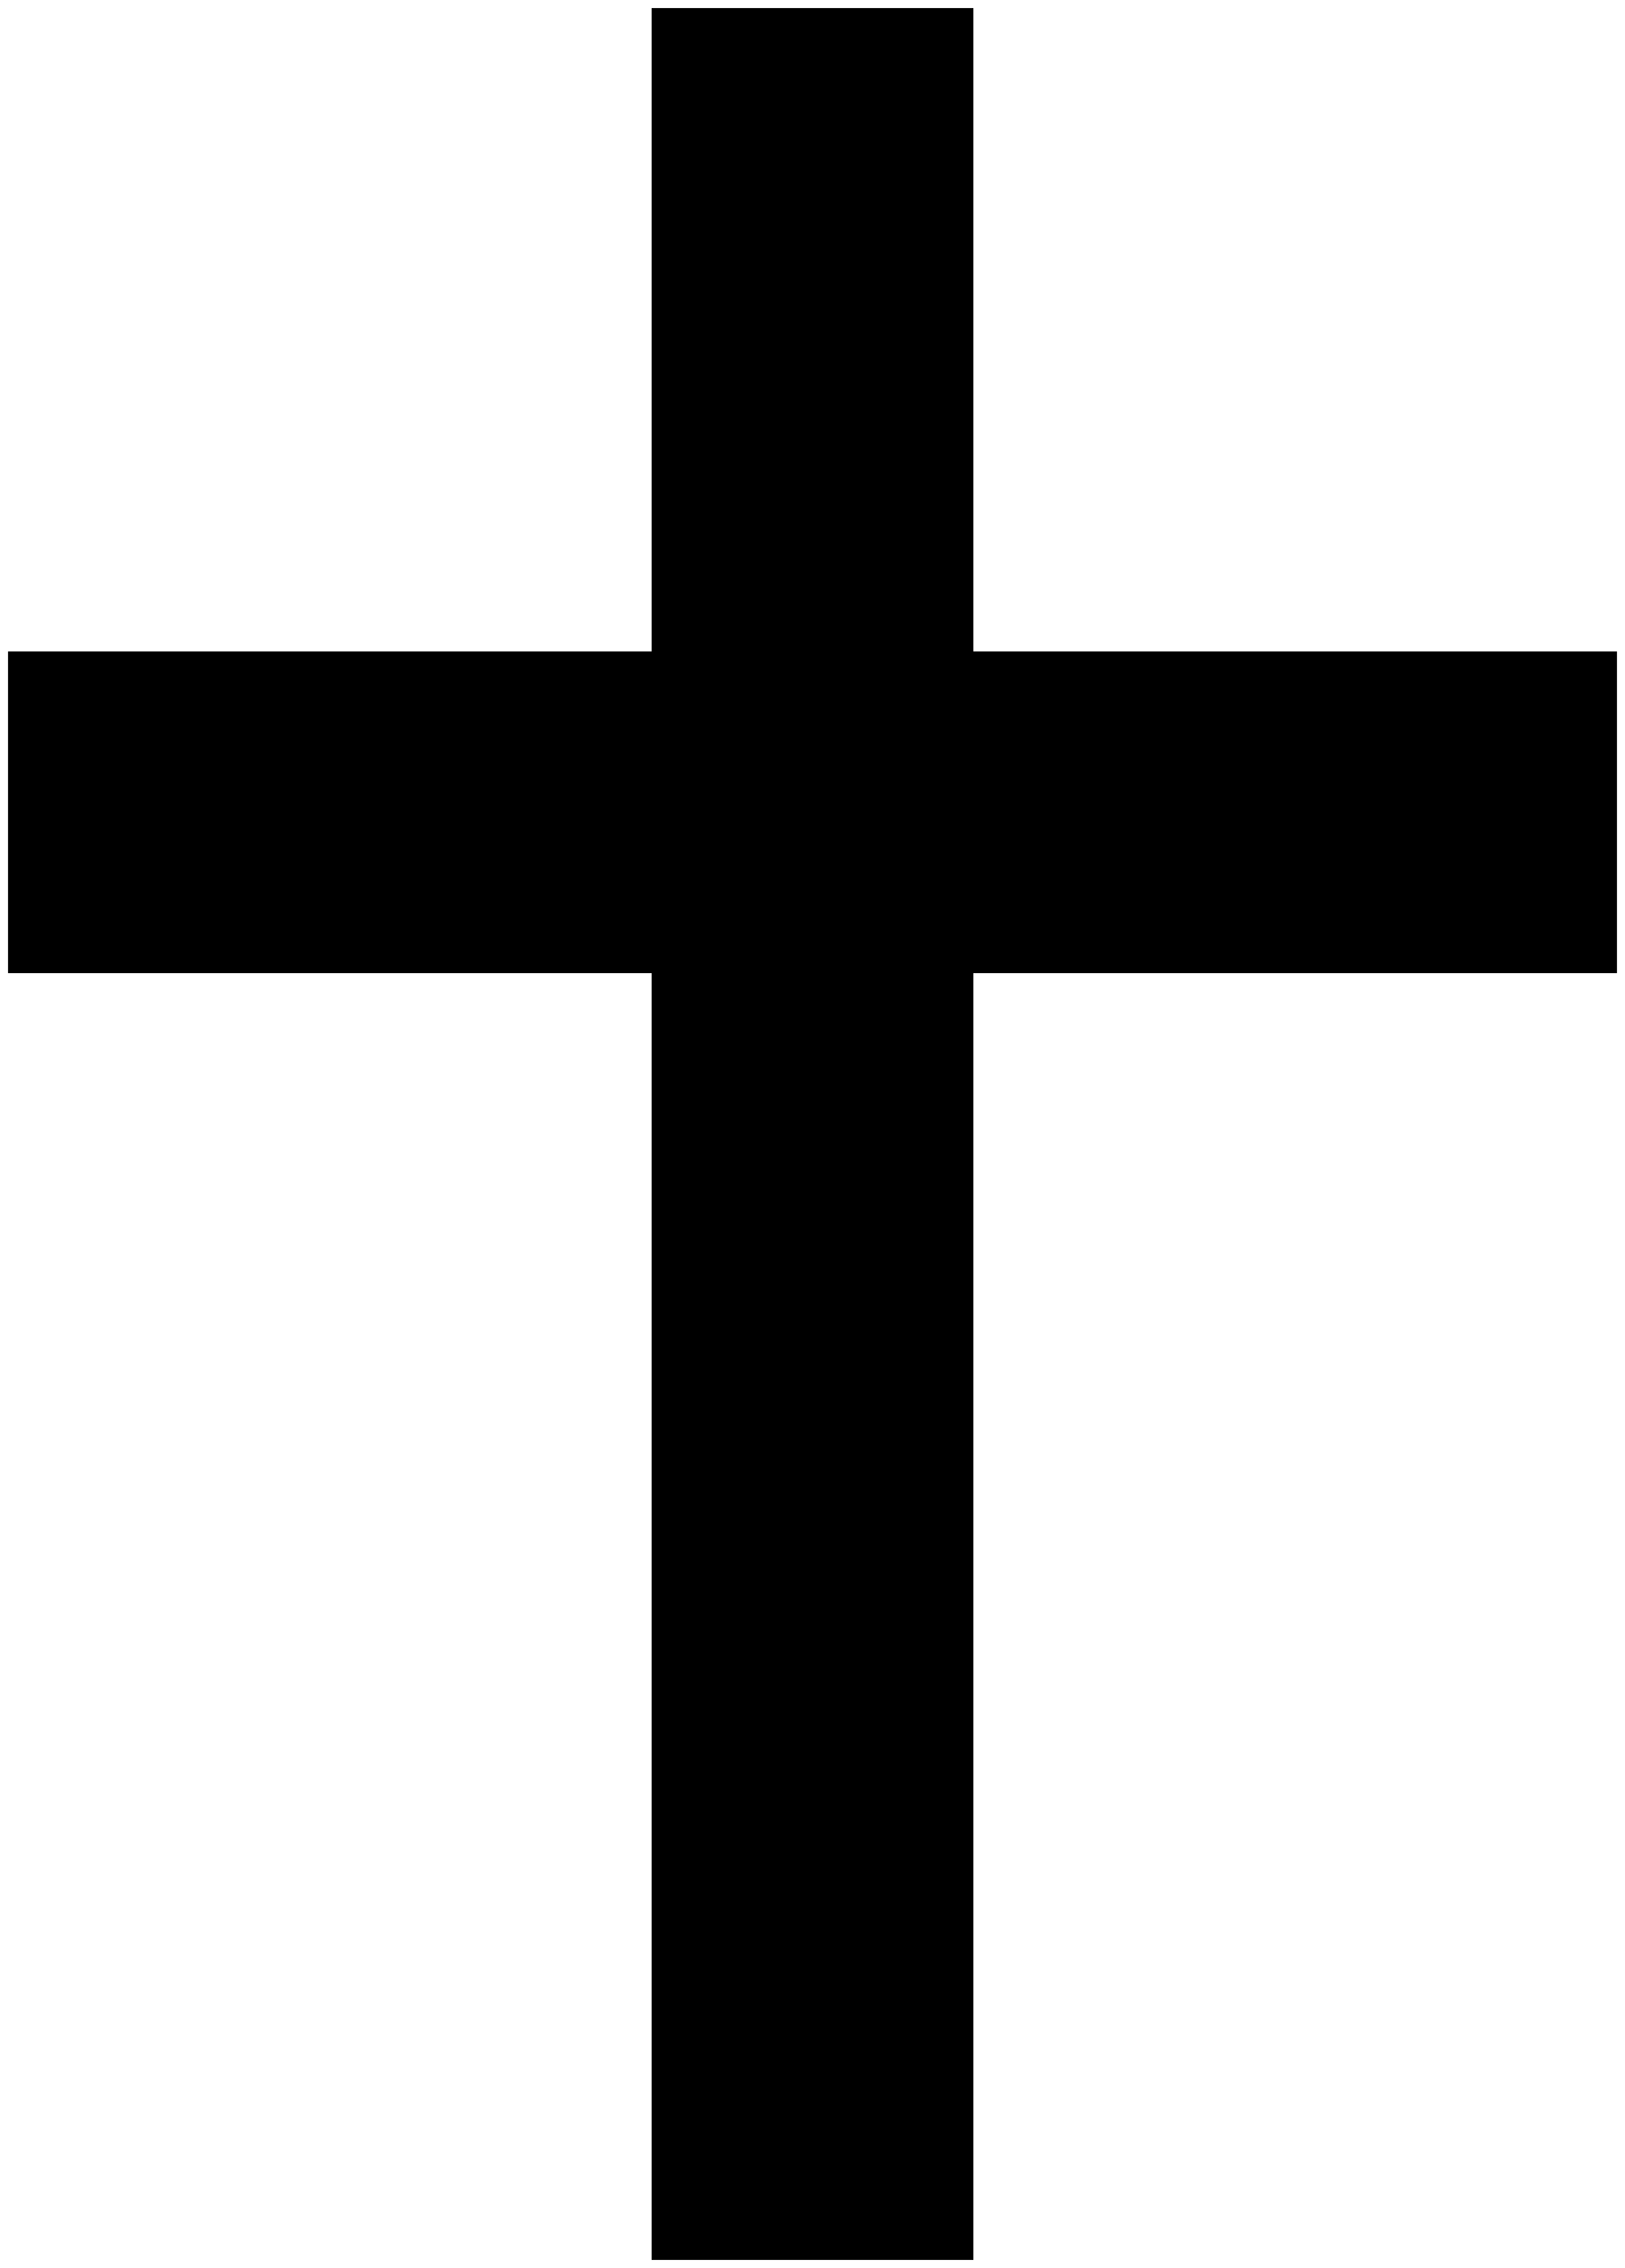 Cross clipart image jpg royalty free library Black white simple christian cross clipart transparent stick ... jpg royalty free library